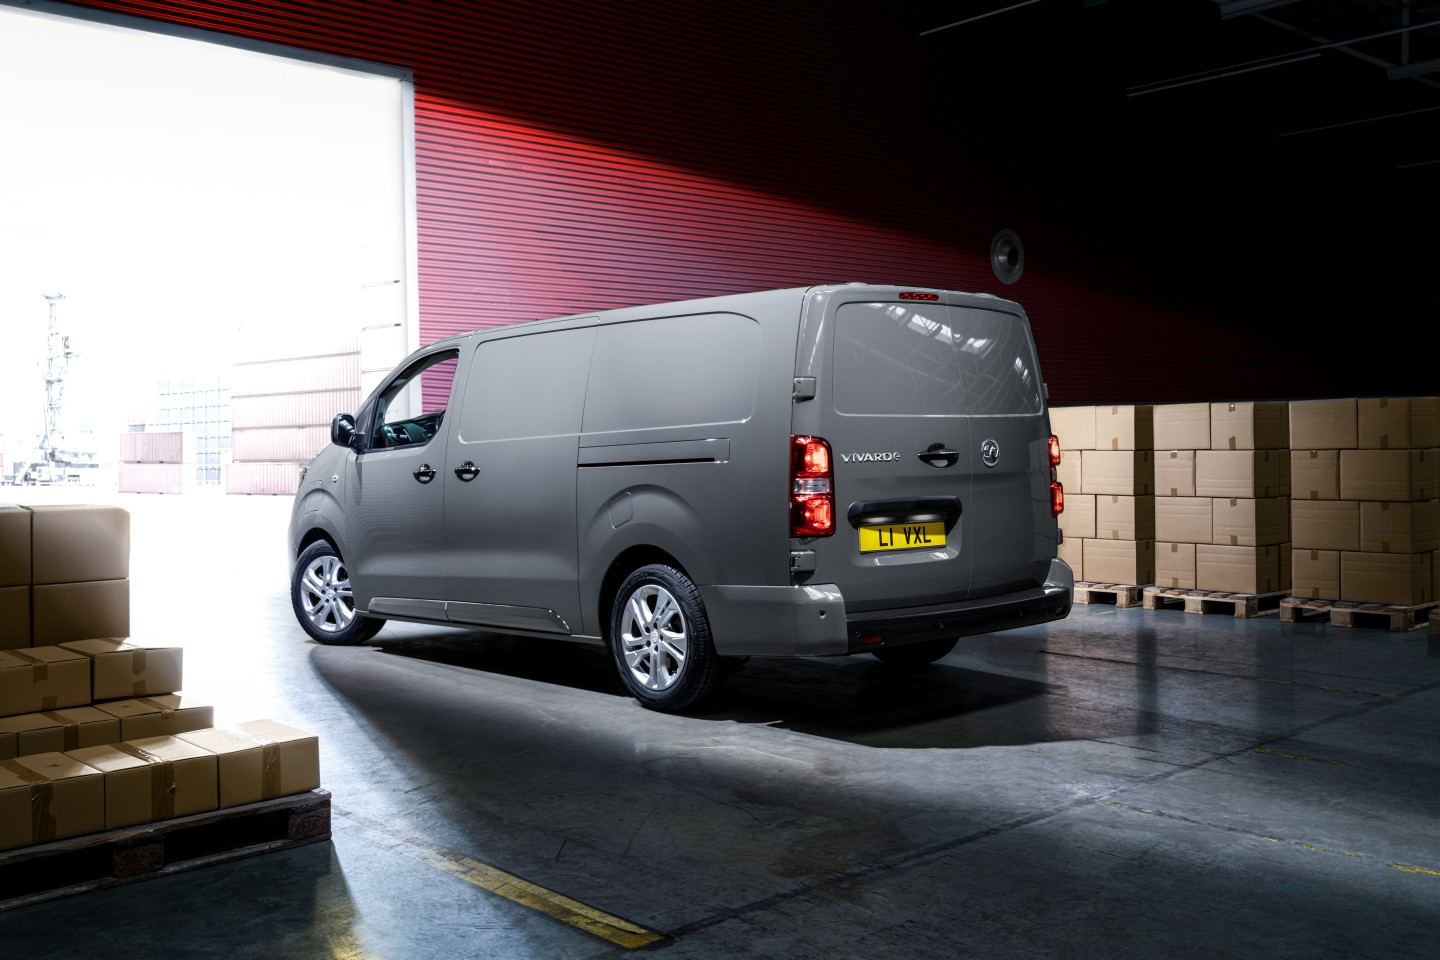 Vauxhall plans to begin taking orders for the Vivaro-e in June 2020 and begin deliveries later in the year